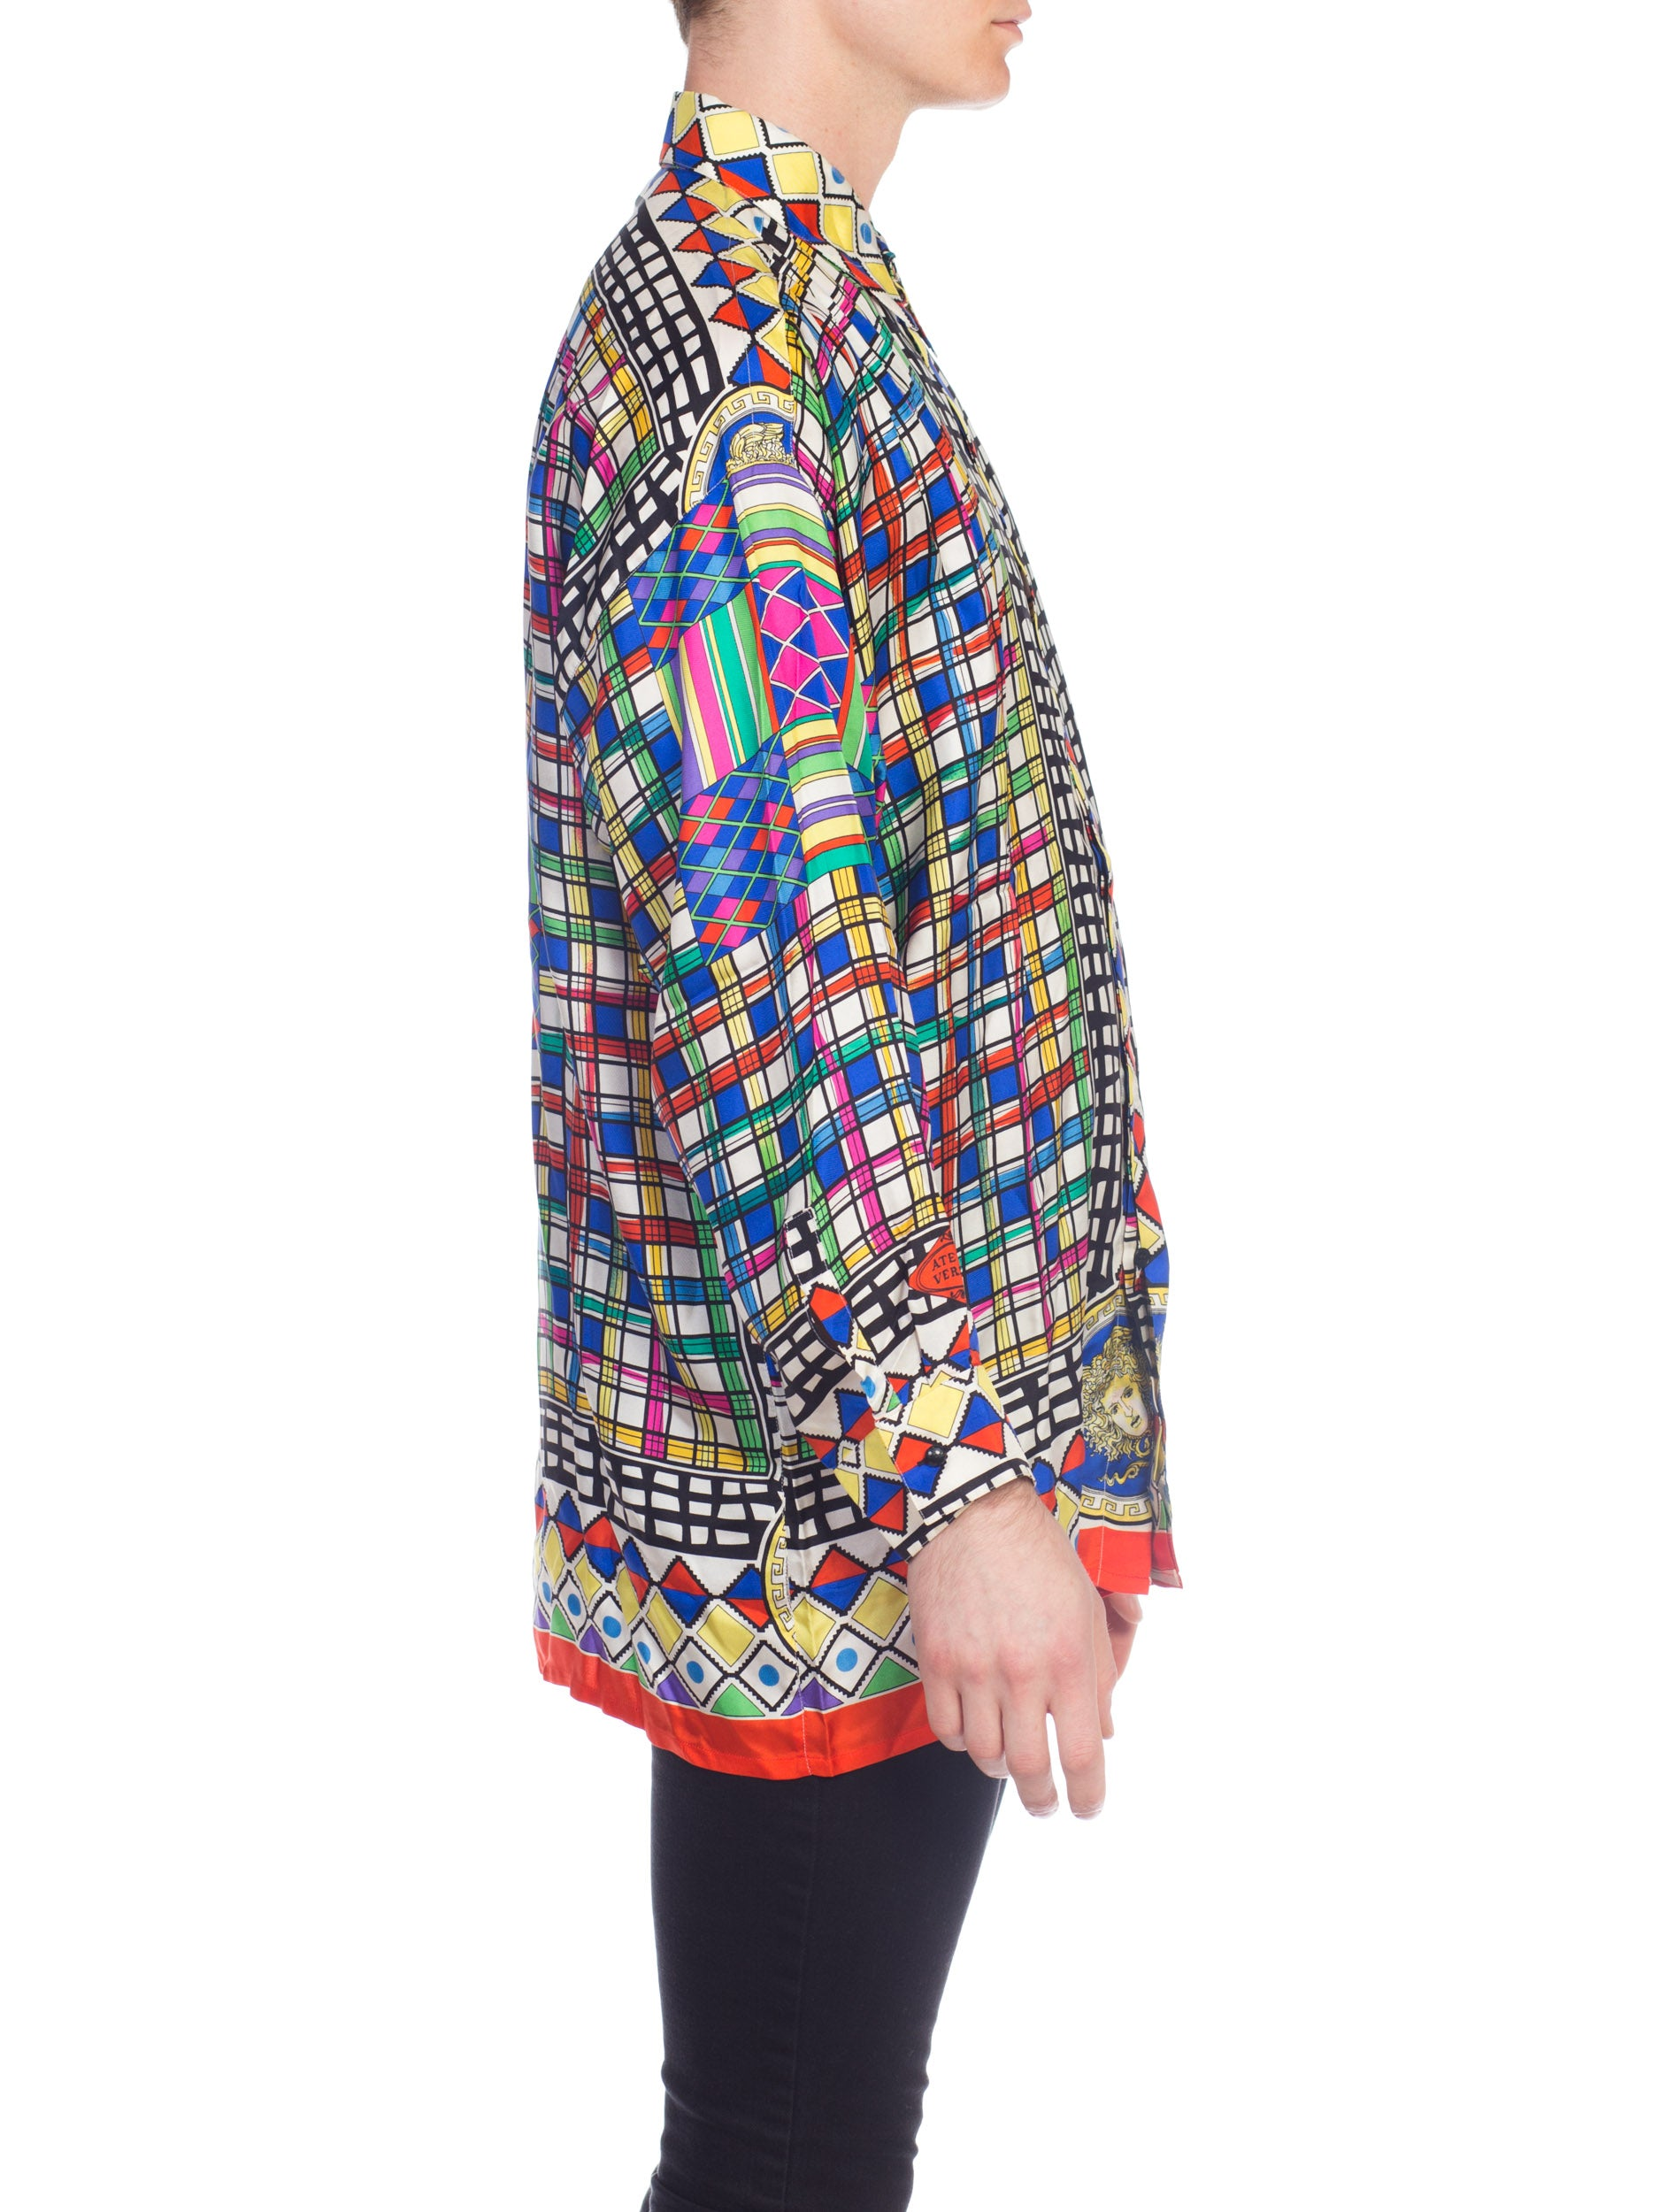 1990S Gianni Versace Multicolor Geometric Silk Men's Shirt Sz 50